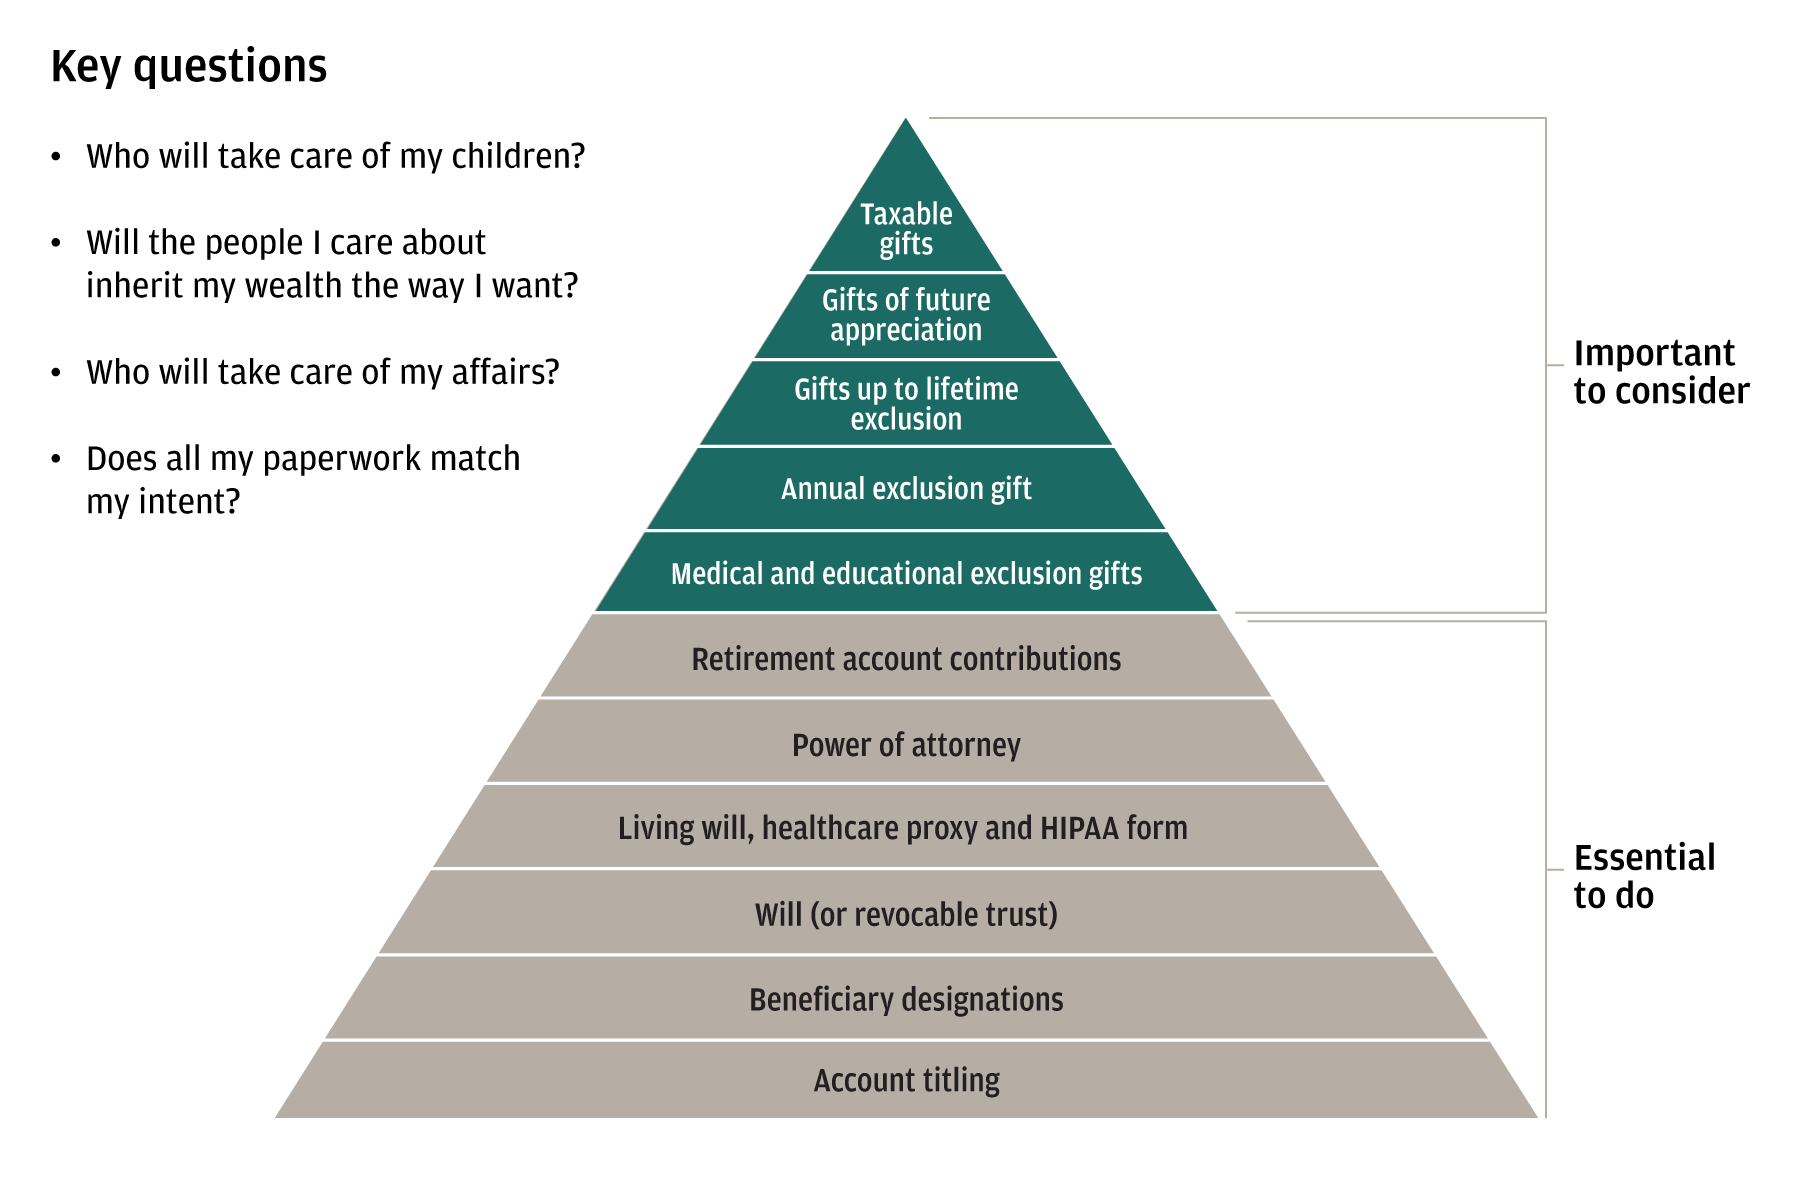 This pyramid chart lists the concerns that drive the establishment of estate plans, and then enumerates a plan's elements and areas for additional consideration.